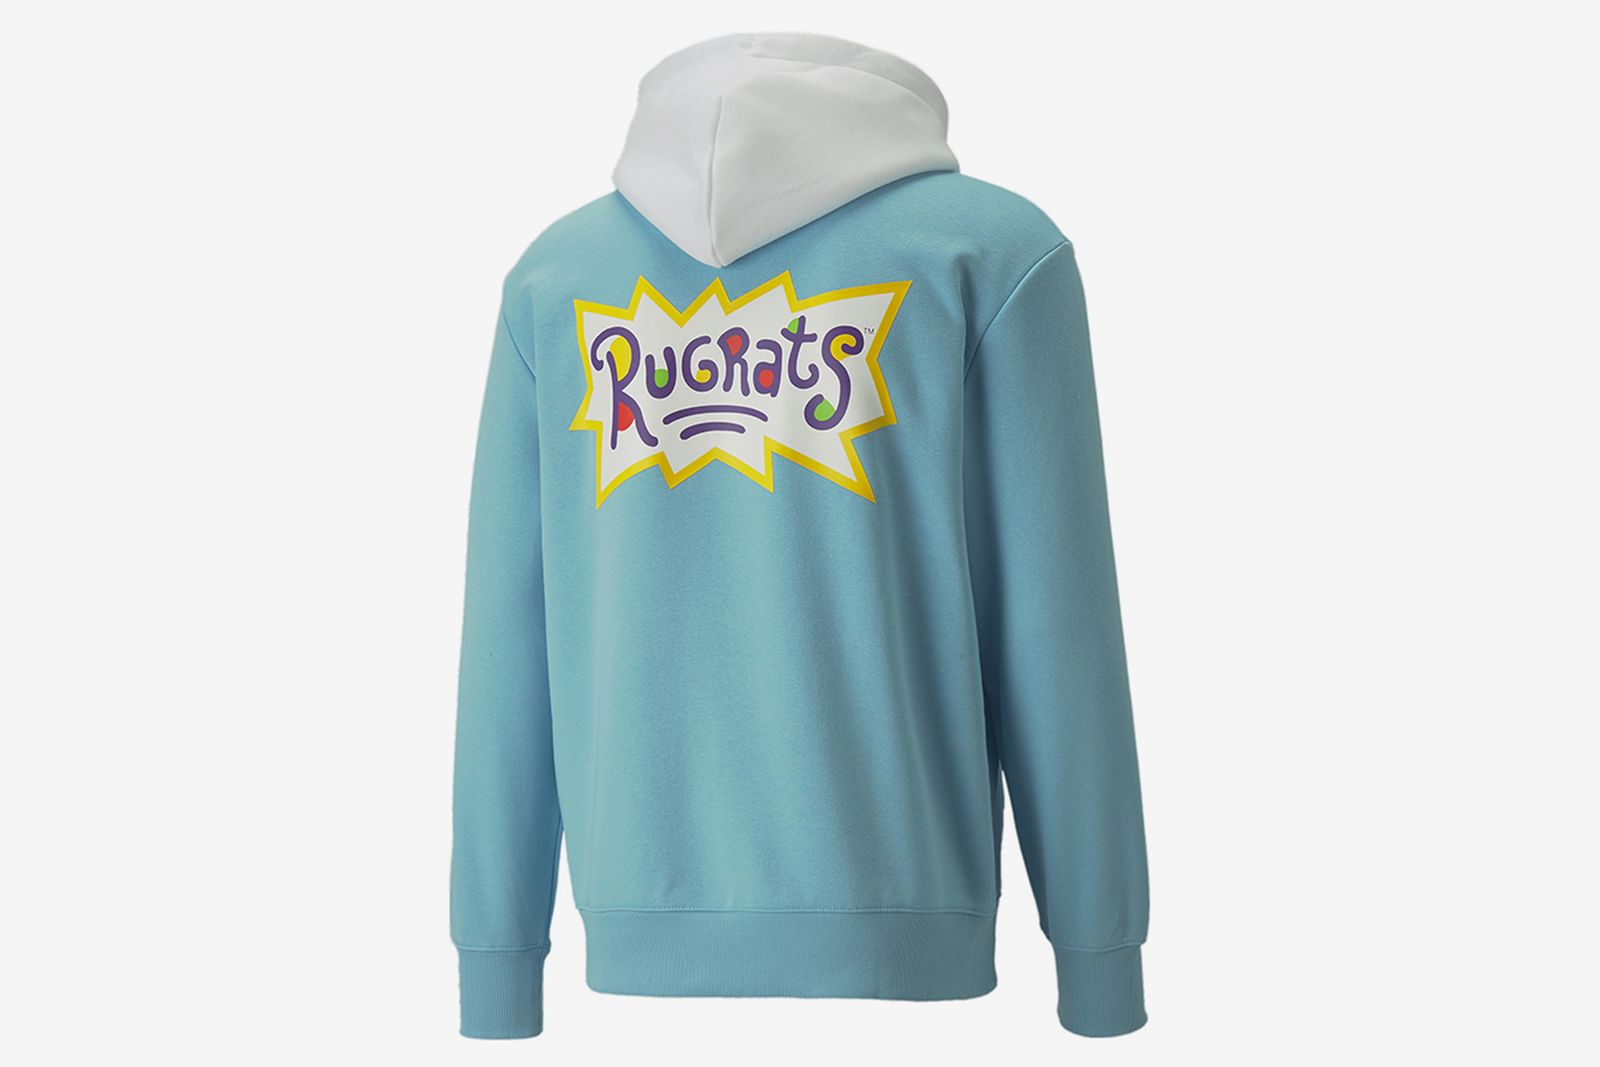 puma-rugrats-collection-release-date-price-14